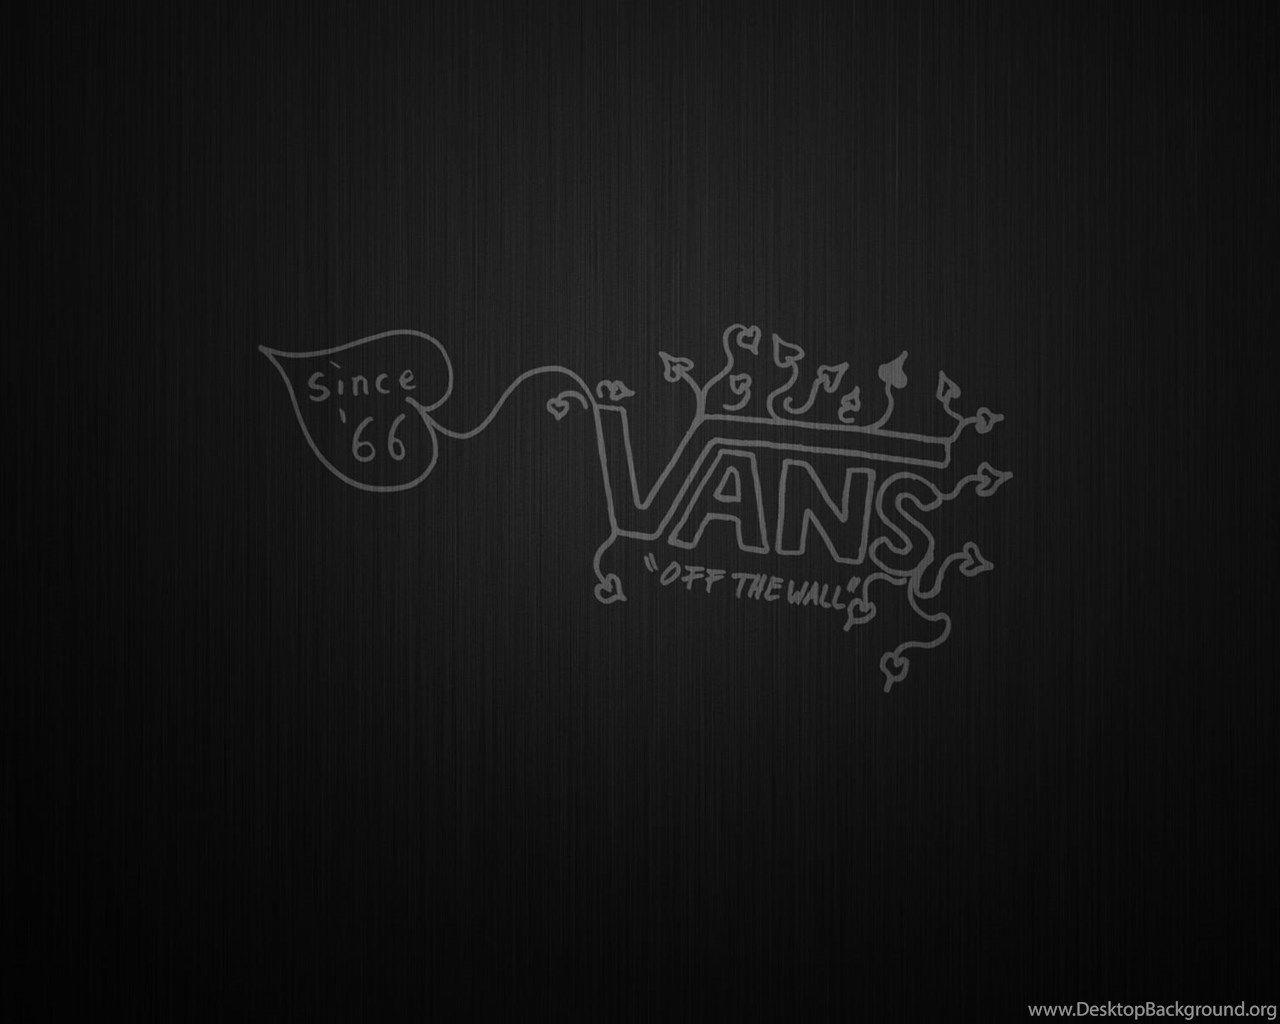 75cc4e0cf6 Gallery For Vans Logo Wallpapers Tumblr Desktop Background